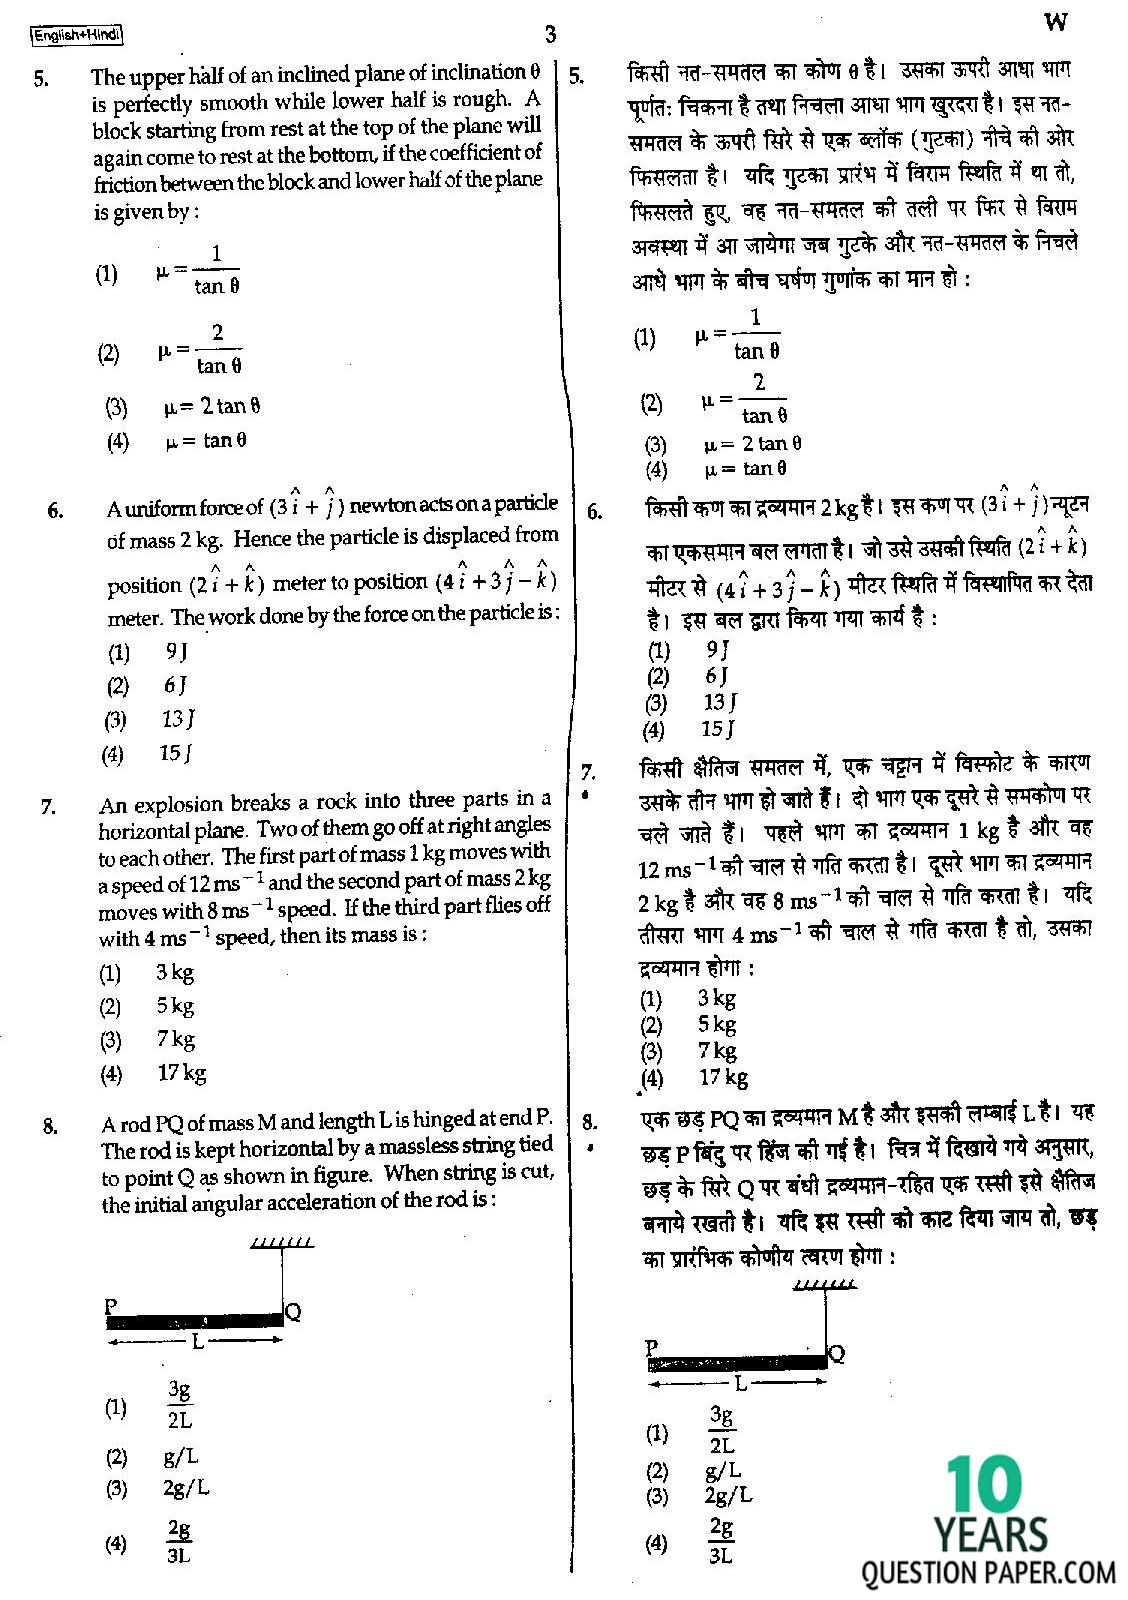 Is the study material of Narayana good enough for the ...